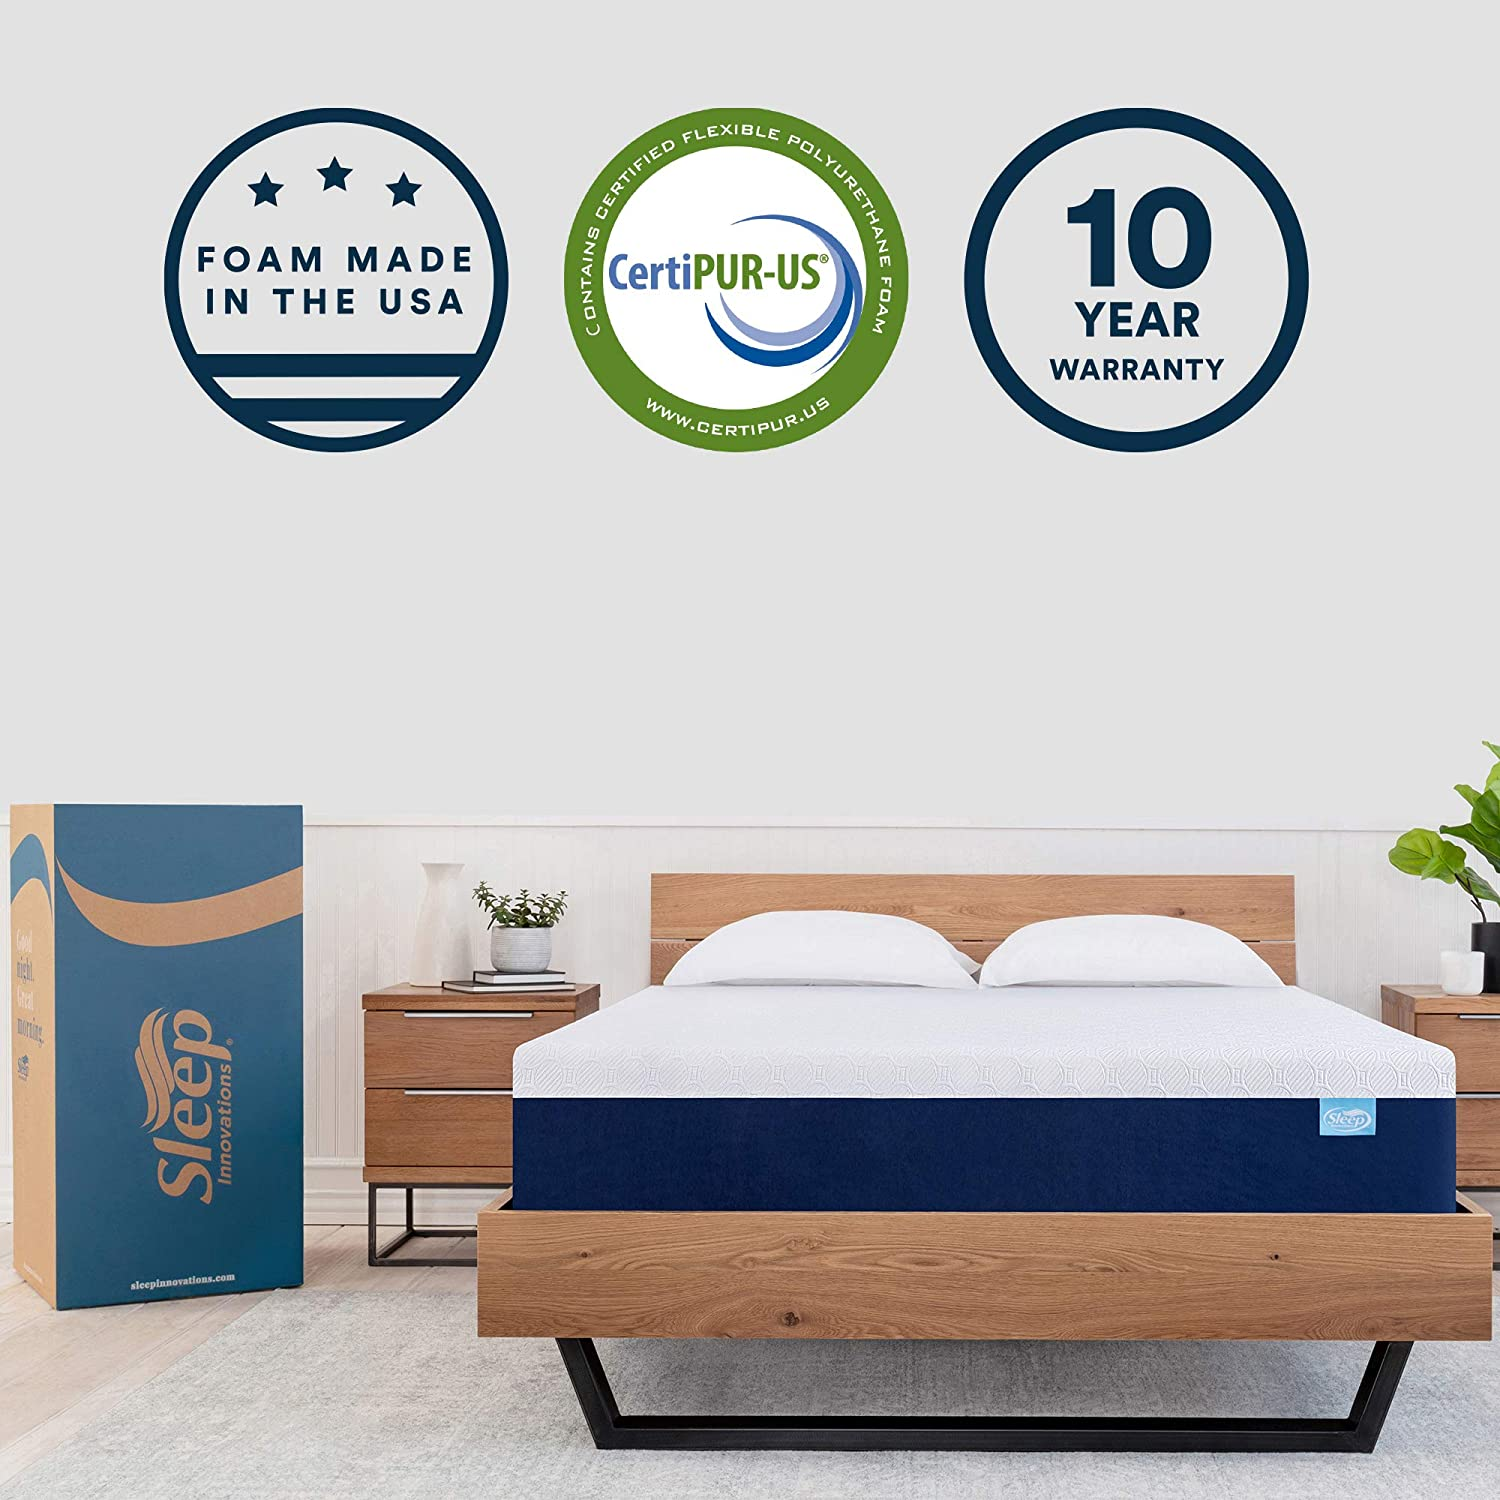 Top 10 Best Memory Foam Mattress (2020 Review & Buying Guide) 1